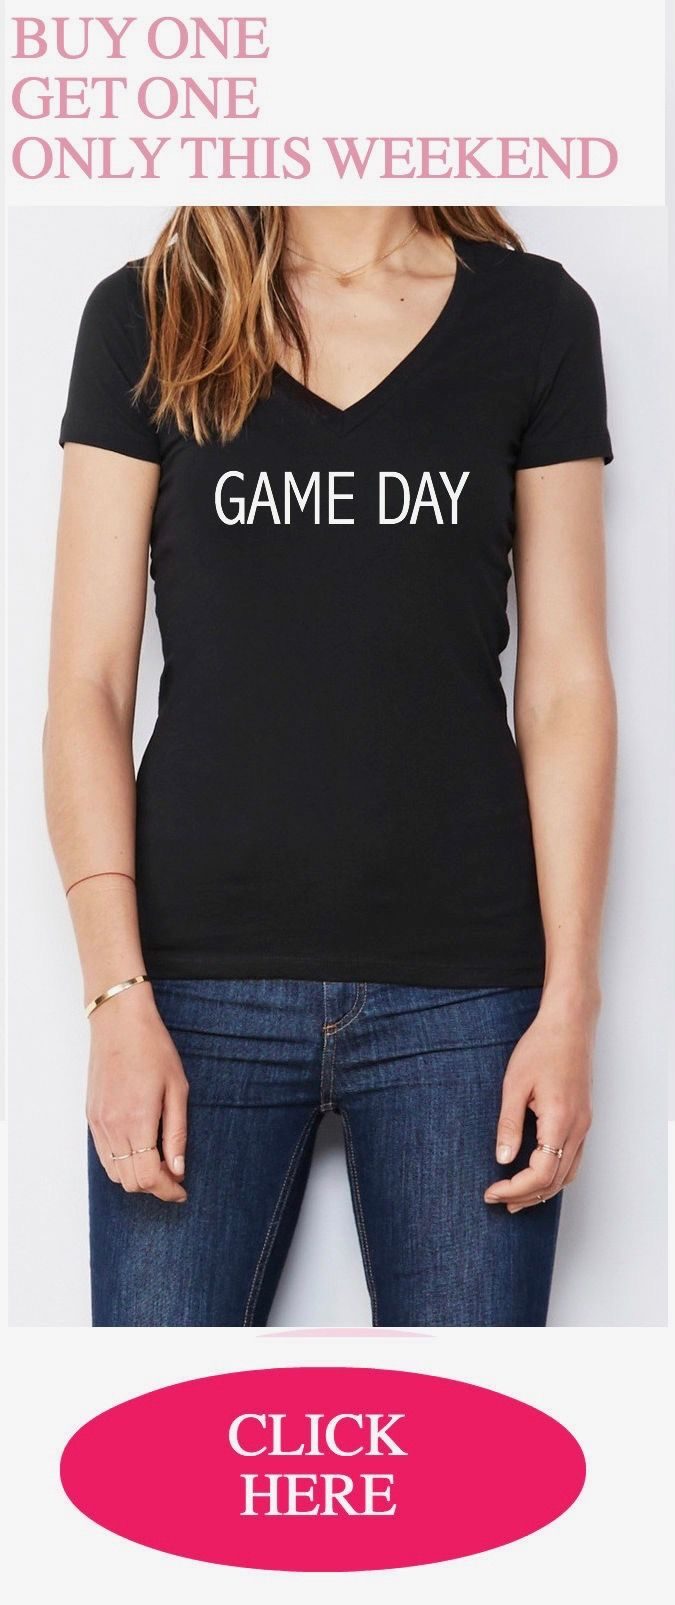 Read instructions on our Etsy page. Buy One Get One Free, Giveaway, Sale, Free Game Day Shirt, Game Day Tshirt,game day muscle tank,game day shirts,football mom shirt,baseball mom shirt,sunday funday shirt,game day tank  This Leah Dara top is printed with an eco-friendly ink and is handmade with love in California.   *Description*  Her go-to tee fits like a well-loved favorite, featuring a modern feminine fit, classic V-neck, short sleeves and superior combed and ring-spun cotton.